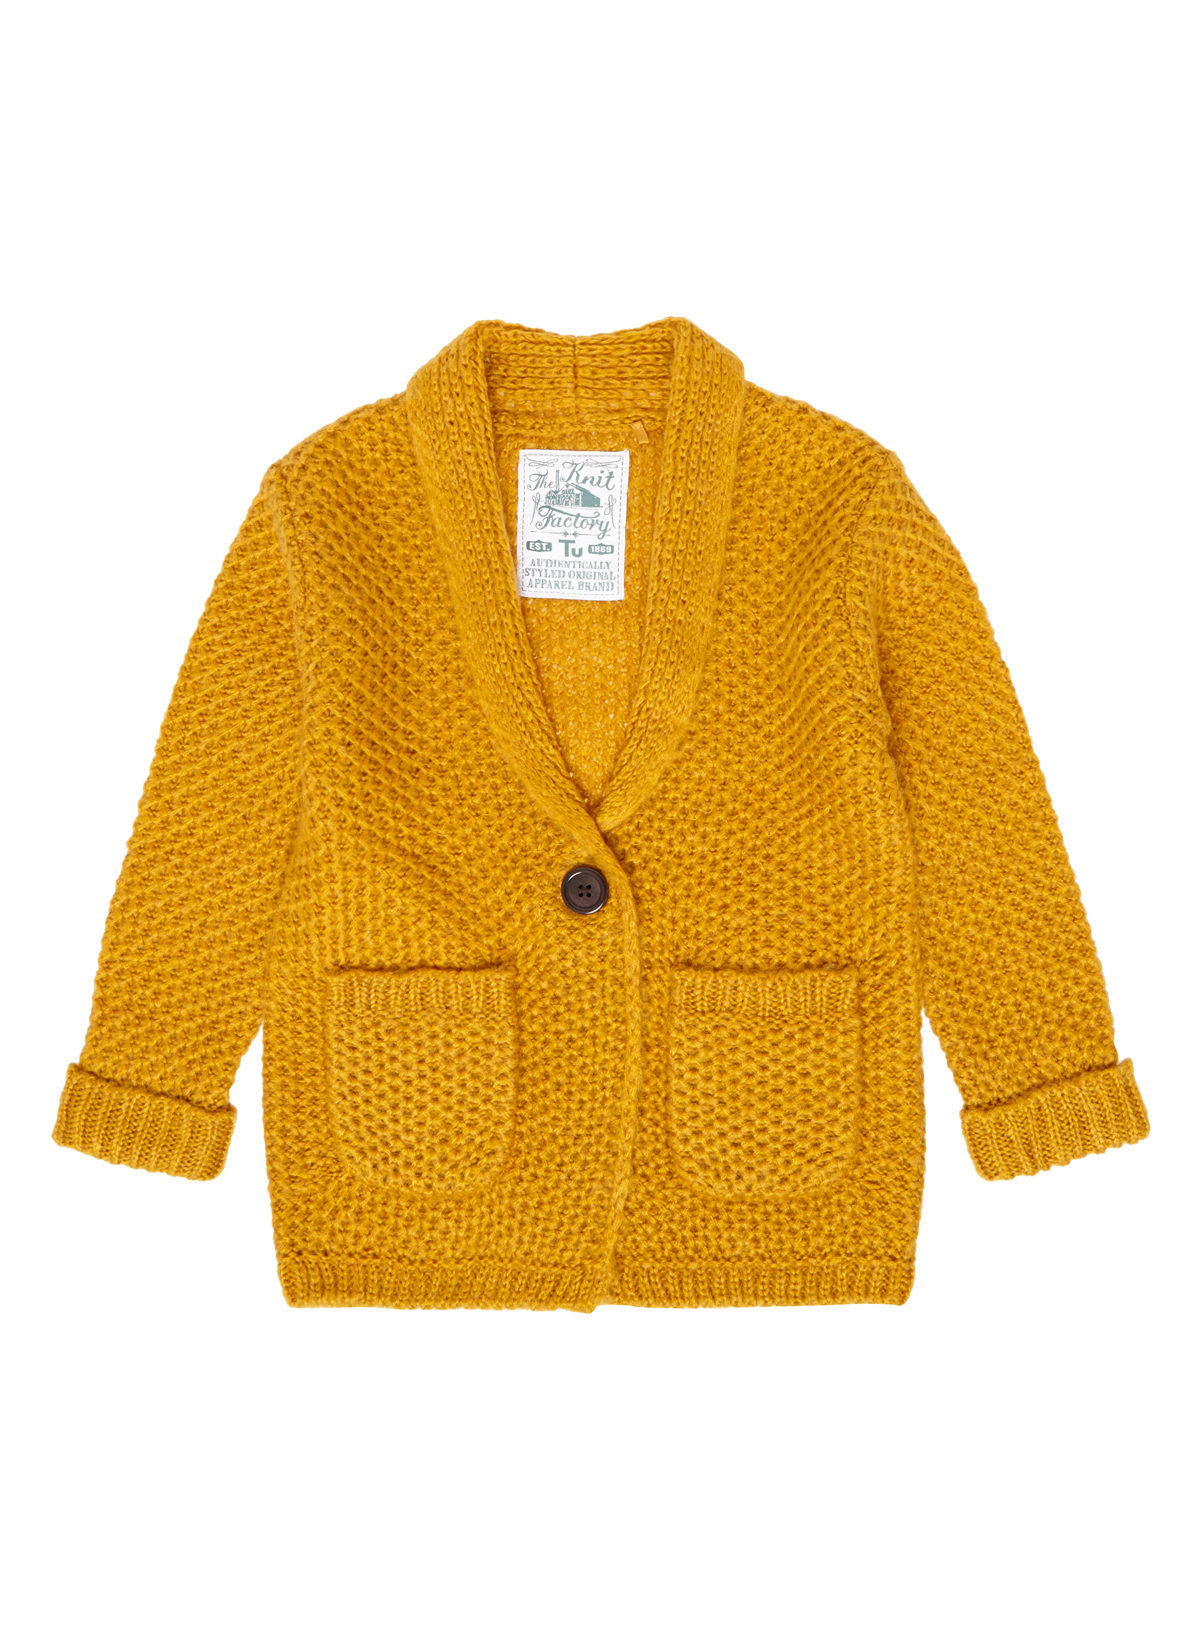 All Girl's Clothing Girls Yellow Honeycomb Cardigan (3-12 years ...